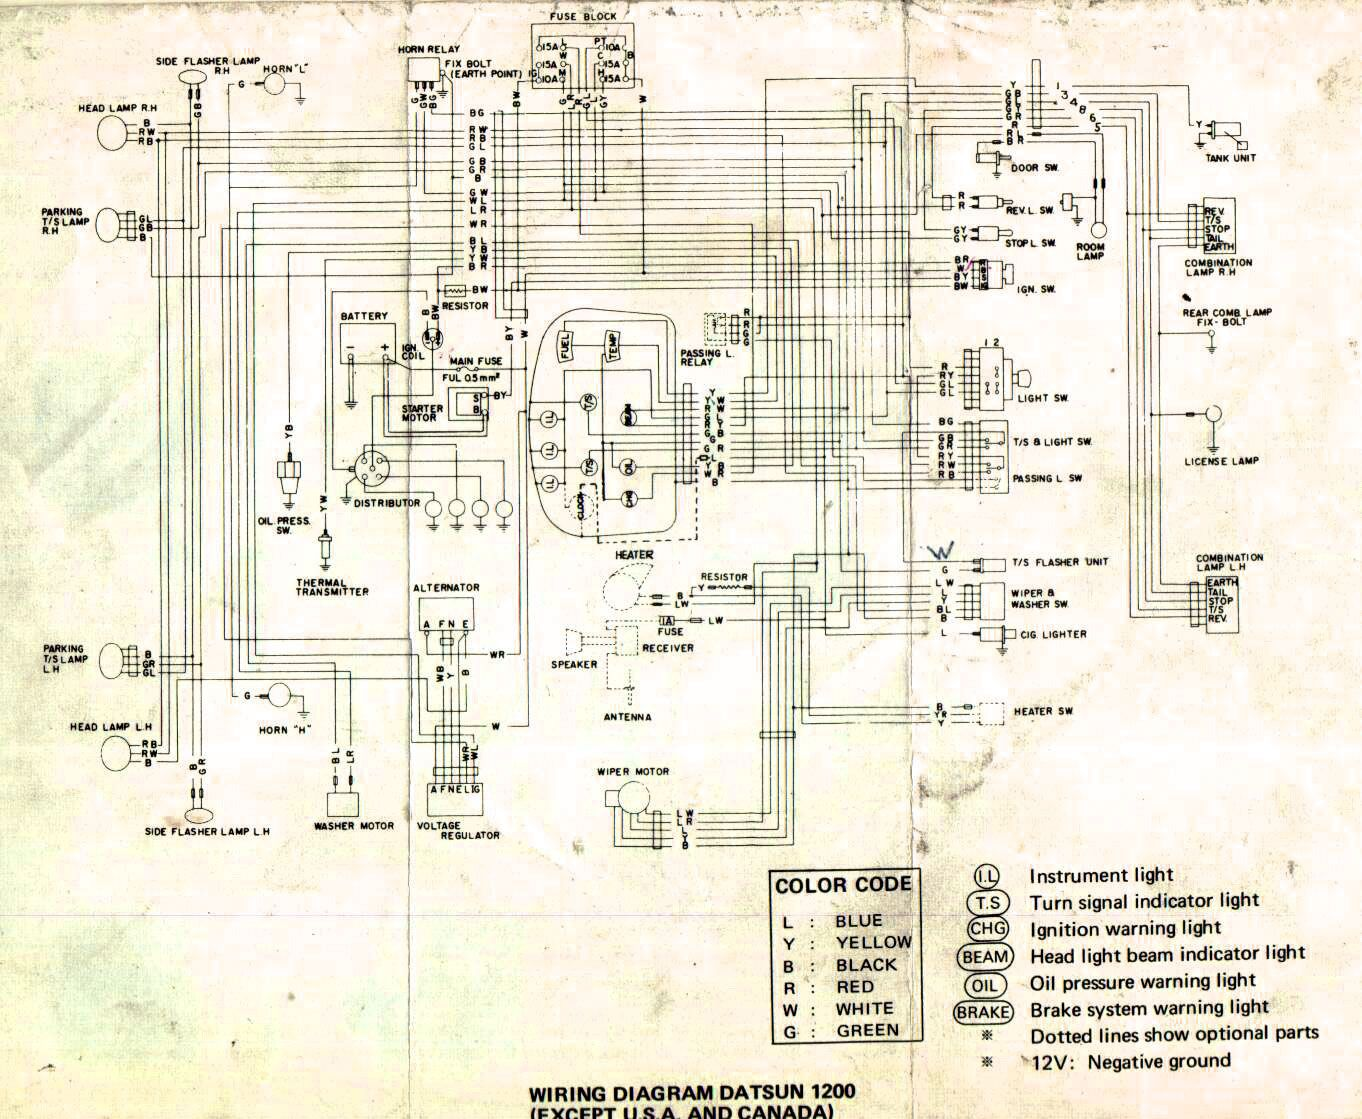 datsun 620 wiring diagram get free image about wiring diagram wire rh linxglobal co 1978 Datsun 620 Wiring-Diagram 1978 Datsun 620 Wiring-Diagram